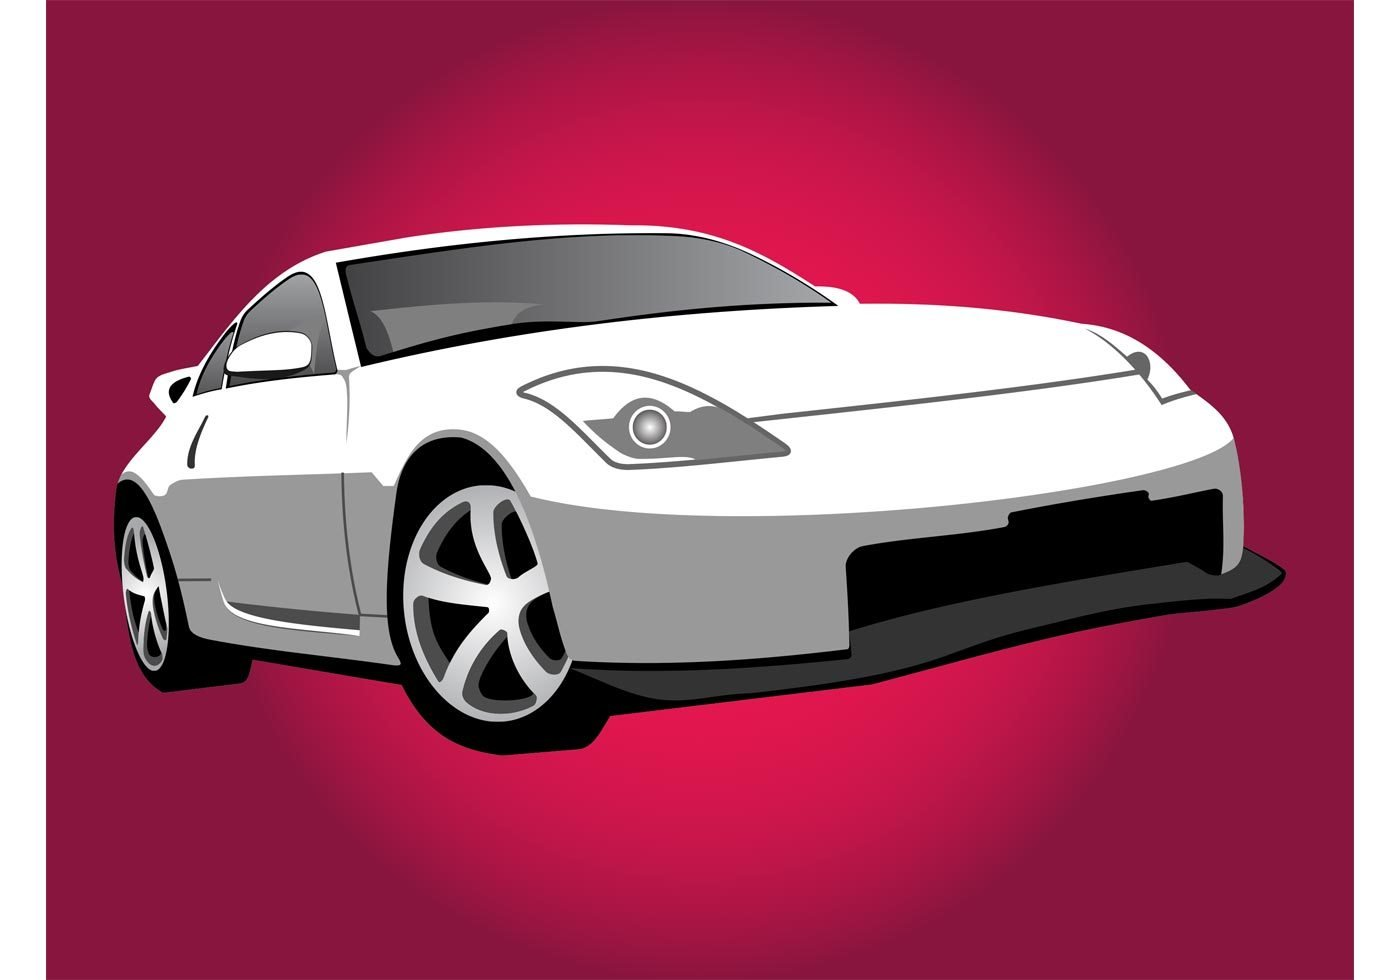 Latest Nissan Car Illustration Download Free Vector Art Stock Free Download